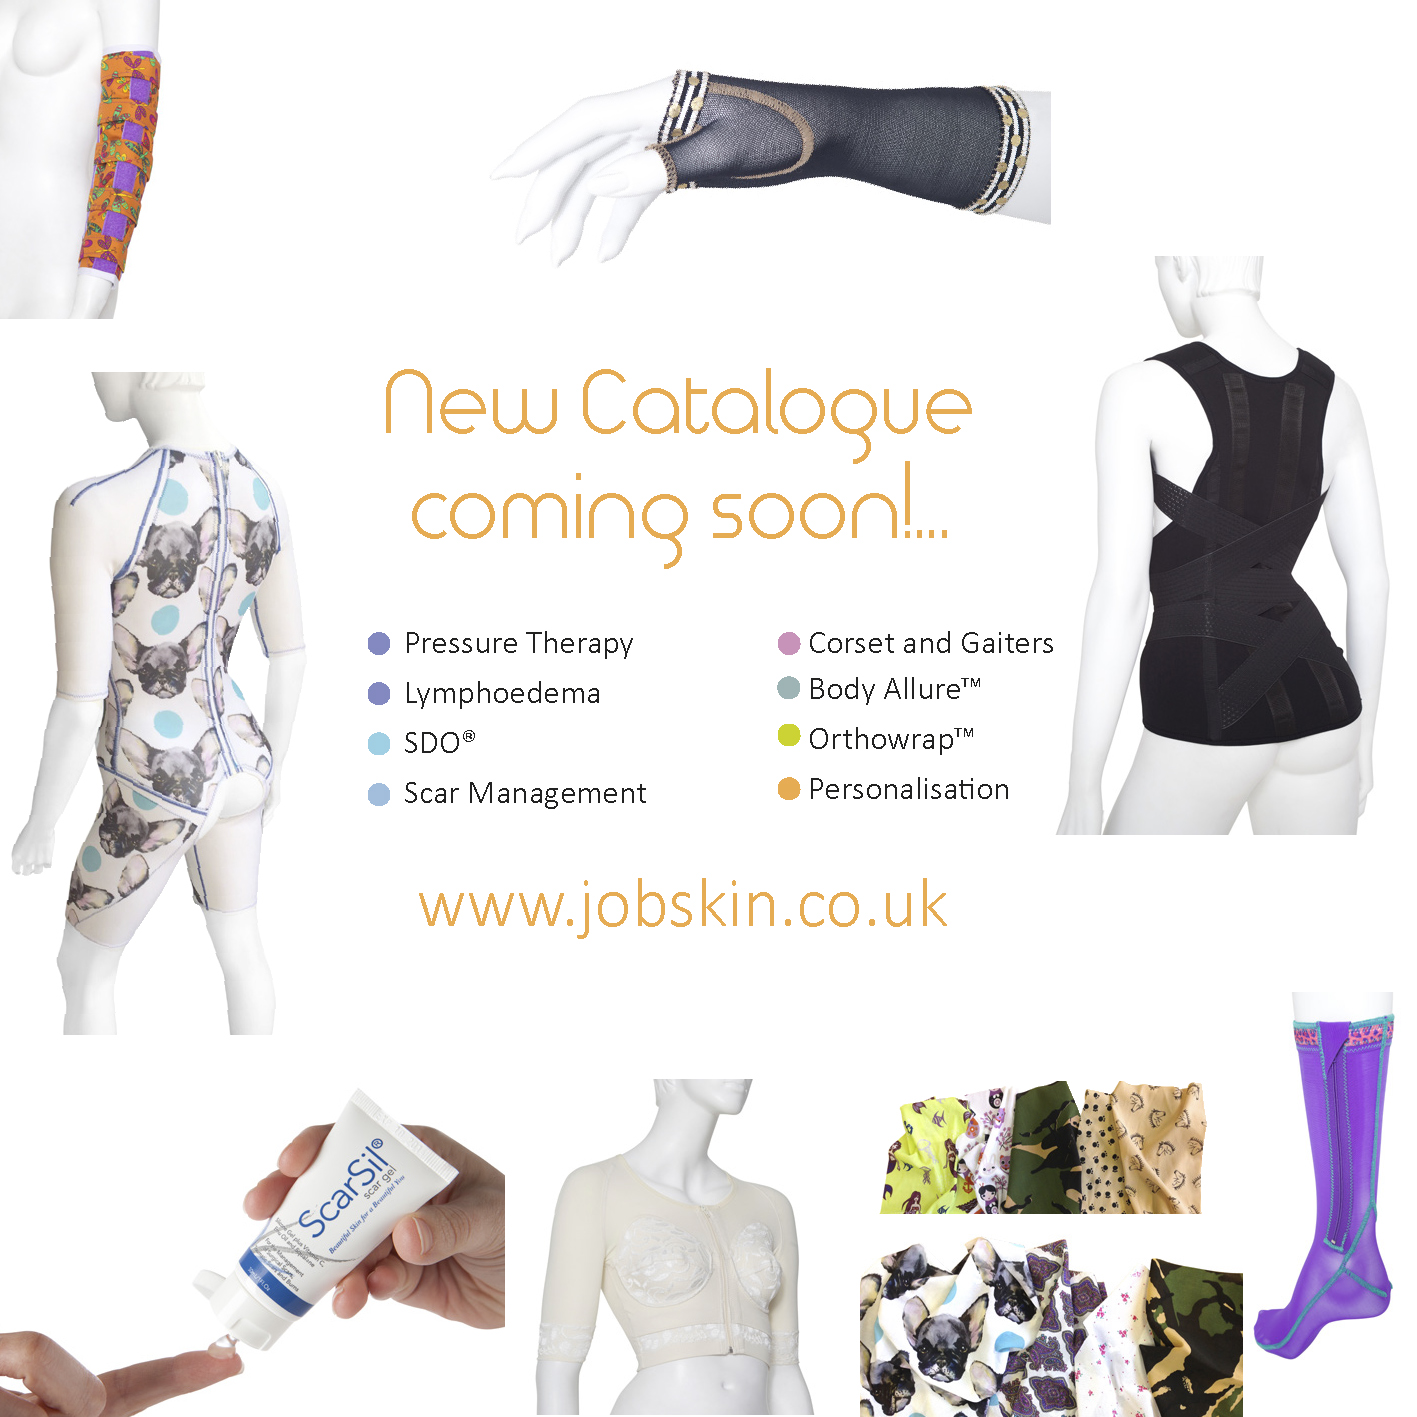 Sneak Peek at our NEW catalogue!